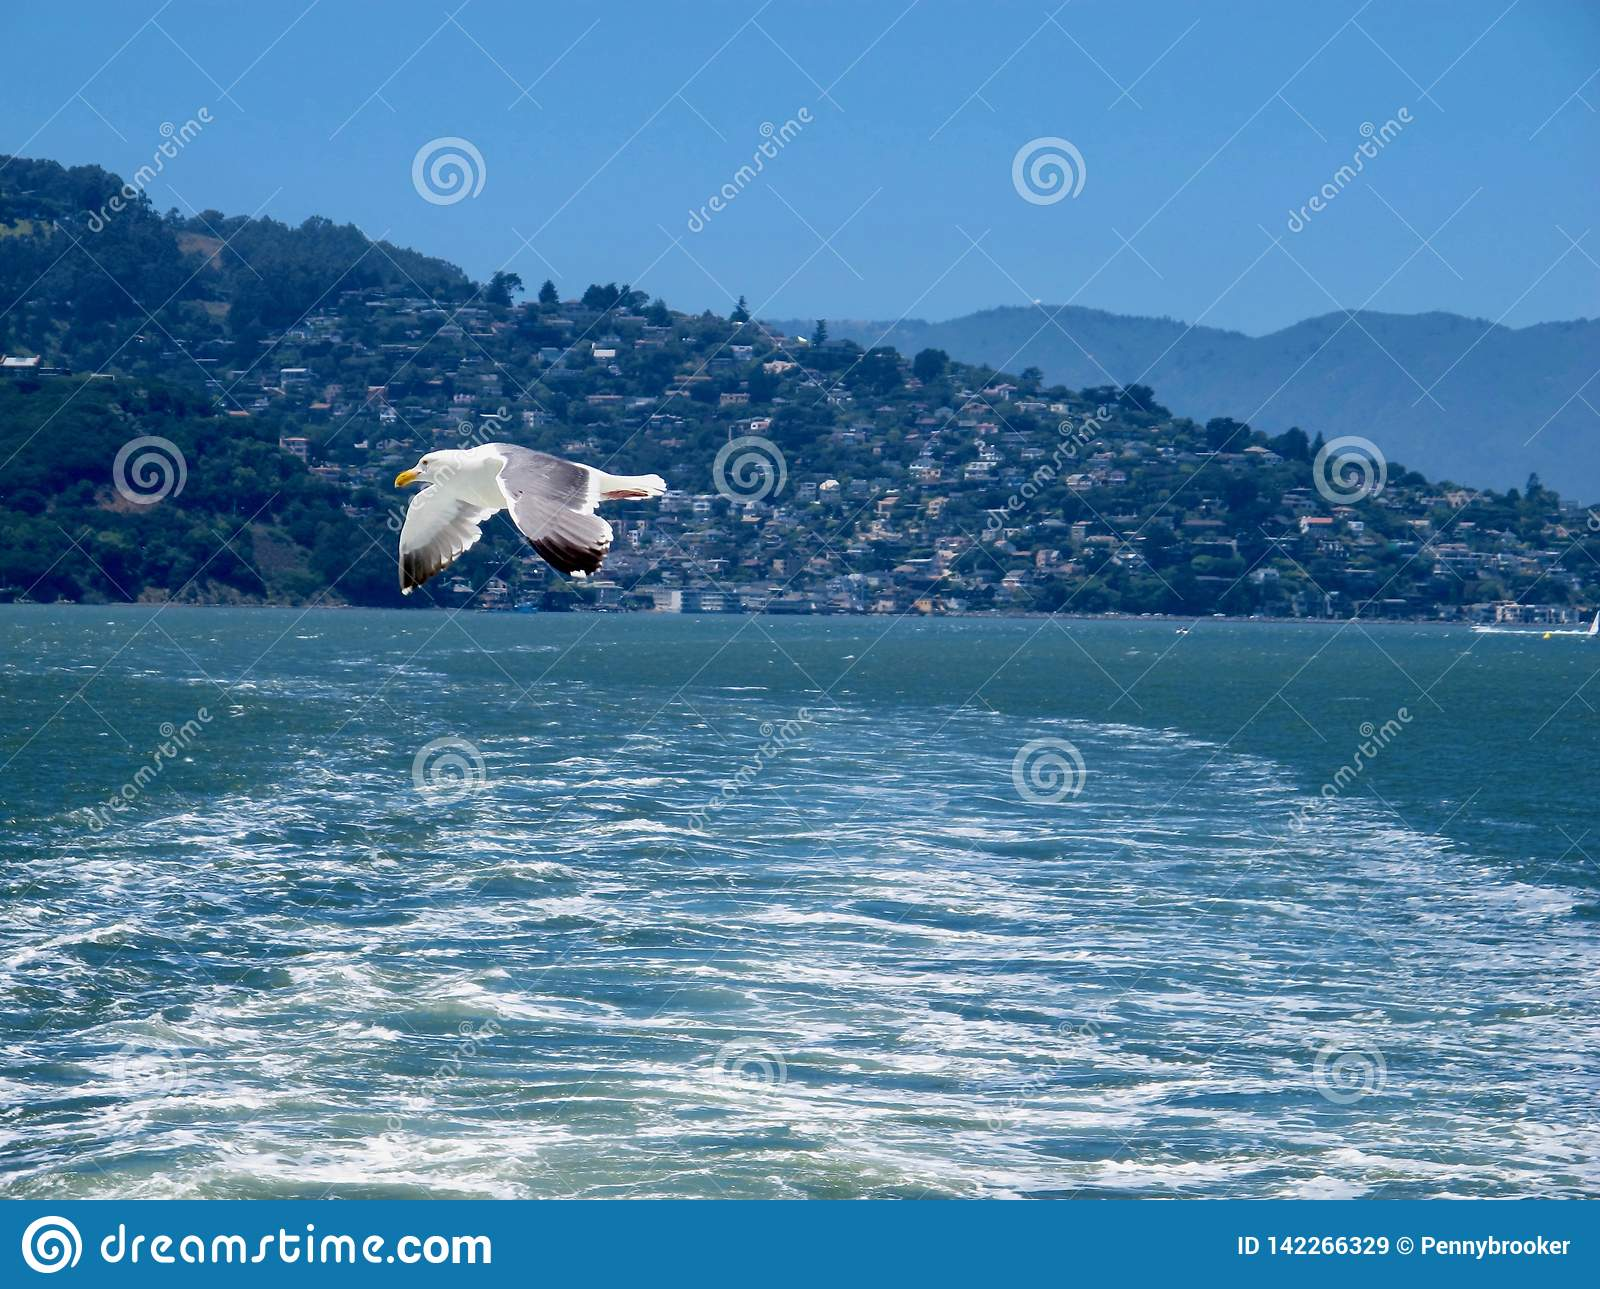 Seagull flying over ocean waves